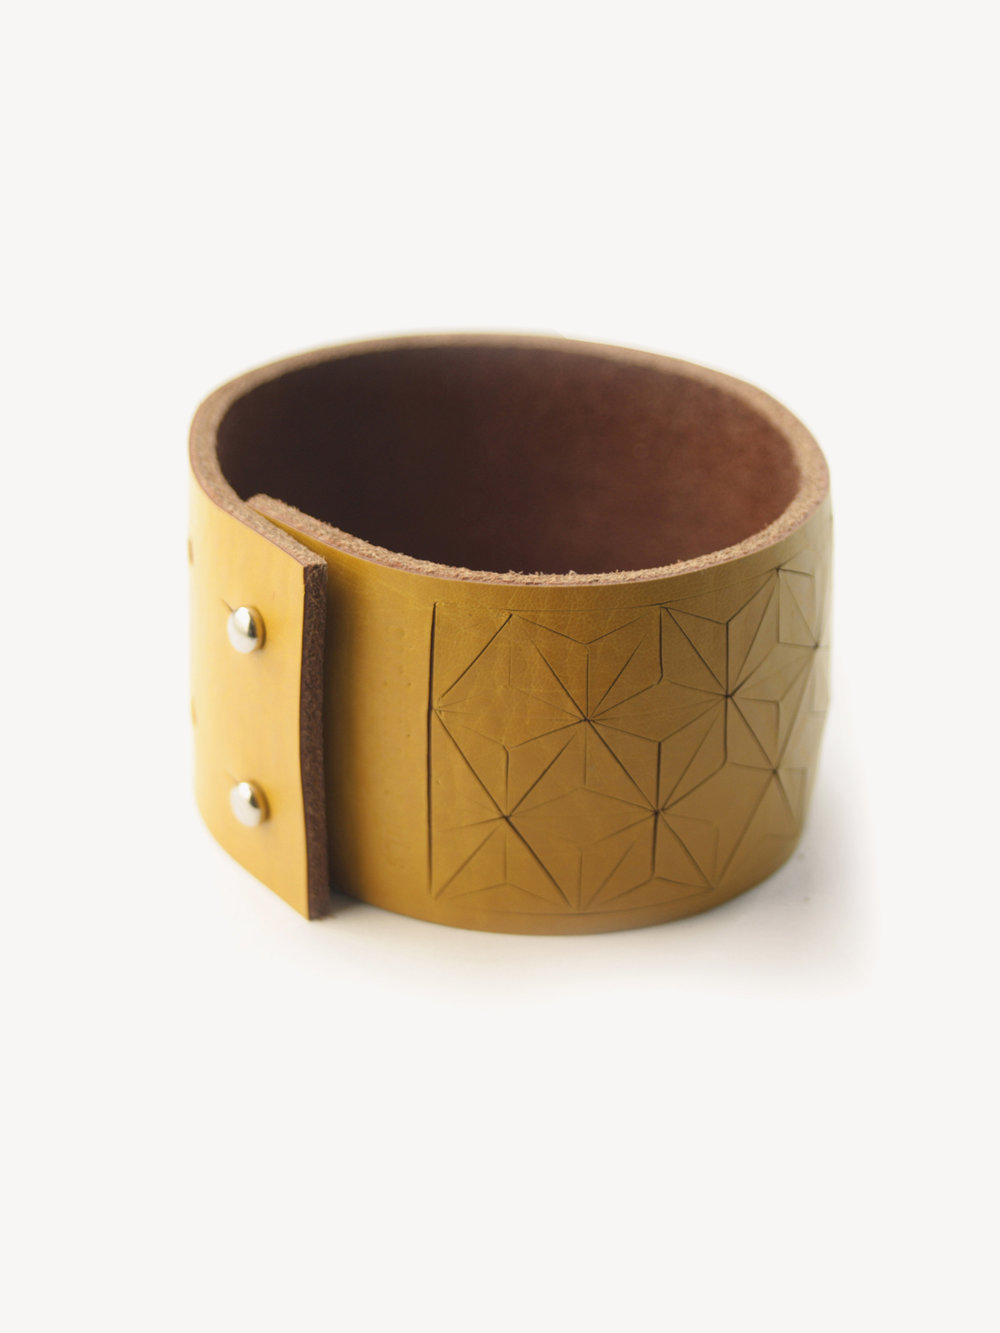 Leder-Armband, schmal in senfgelb/ Leather bracelet, small in curry